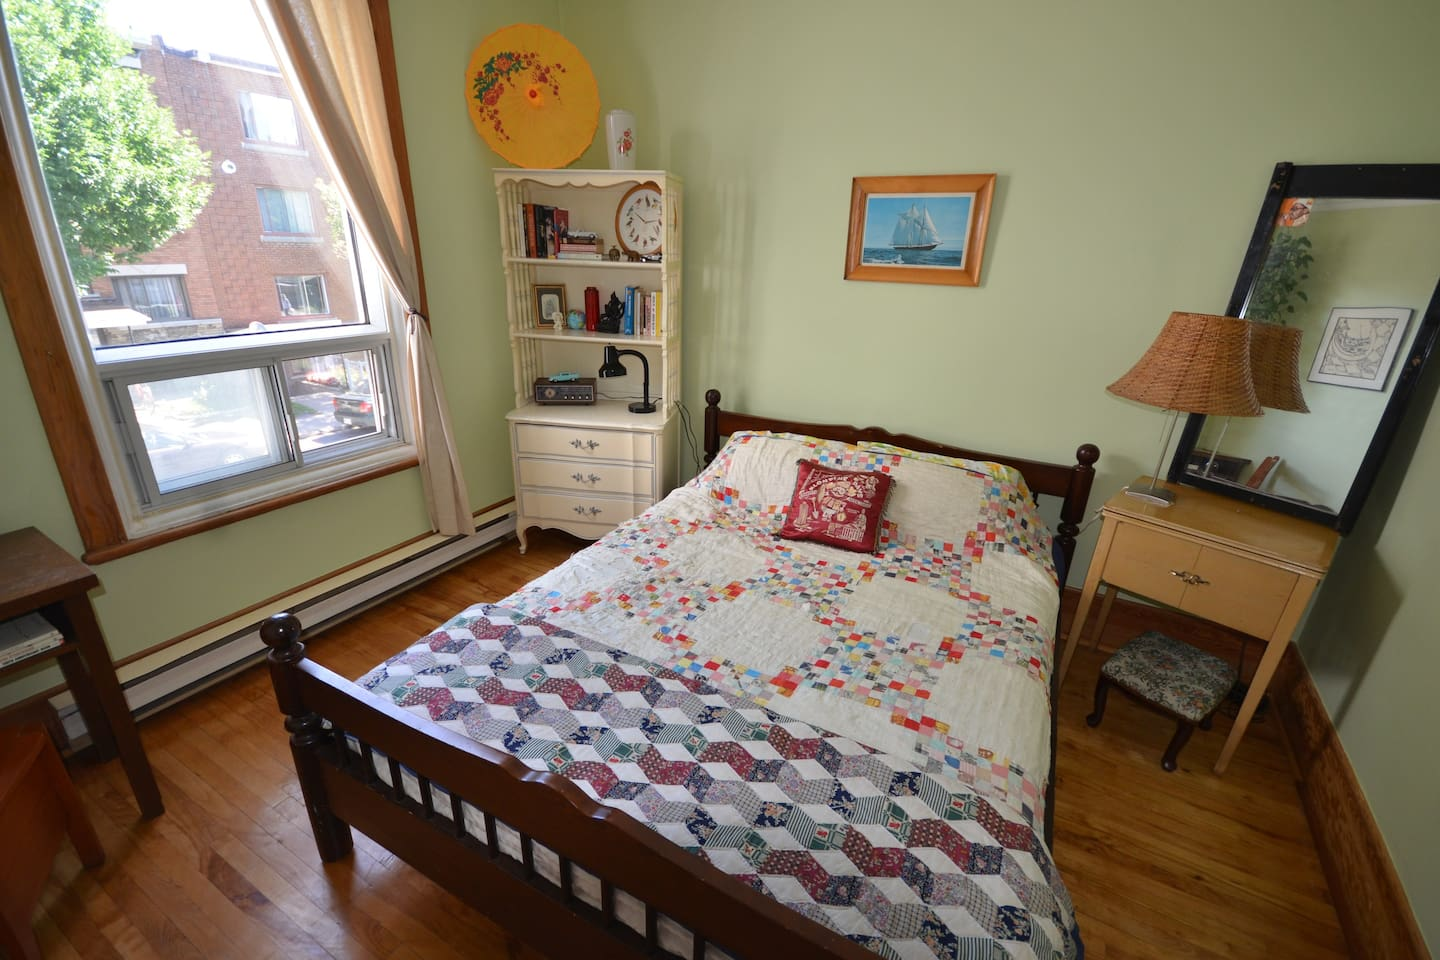 the guest room: sunny master bedroom for 2 with dresser, closet and desk.